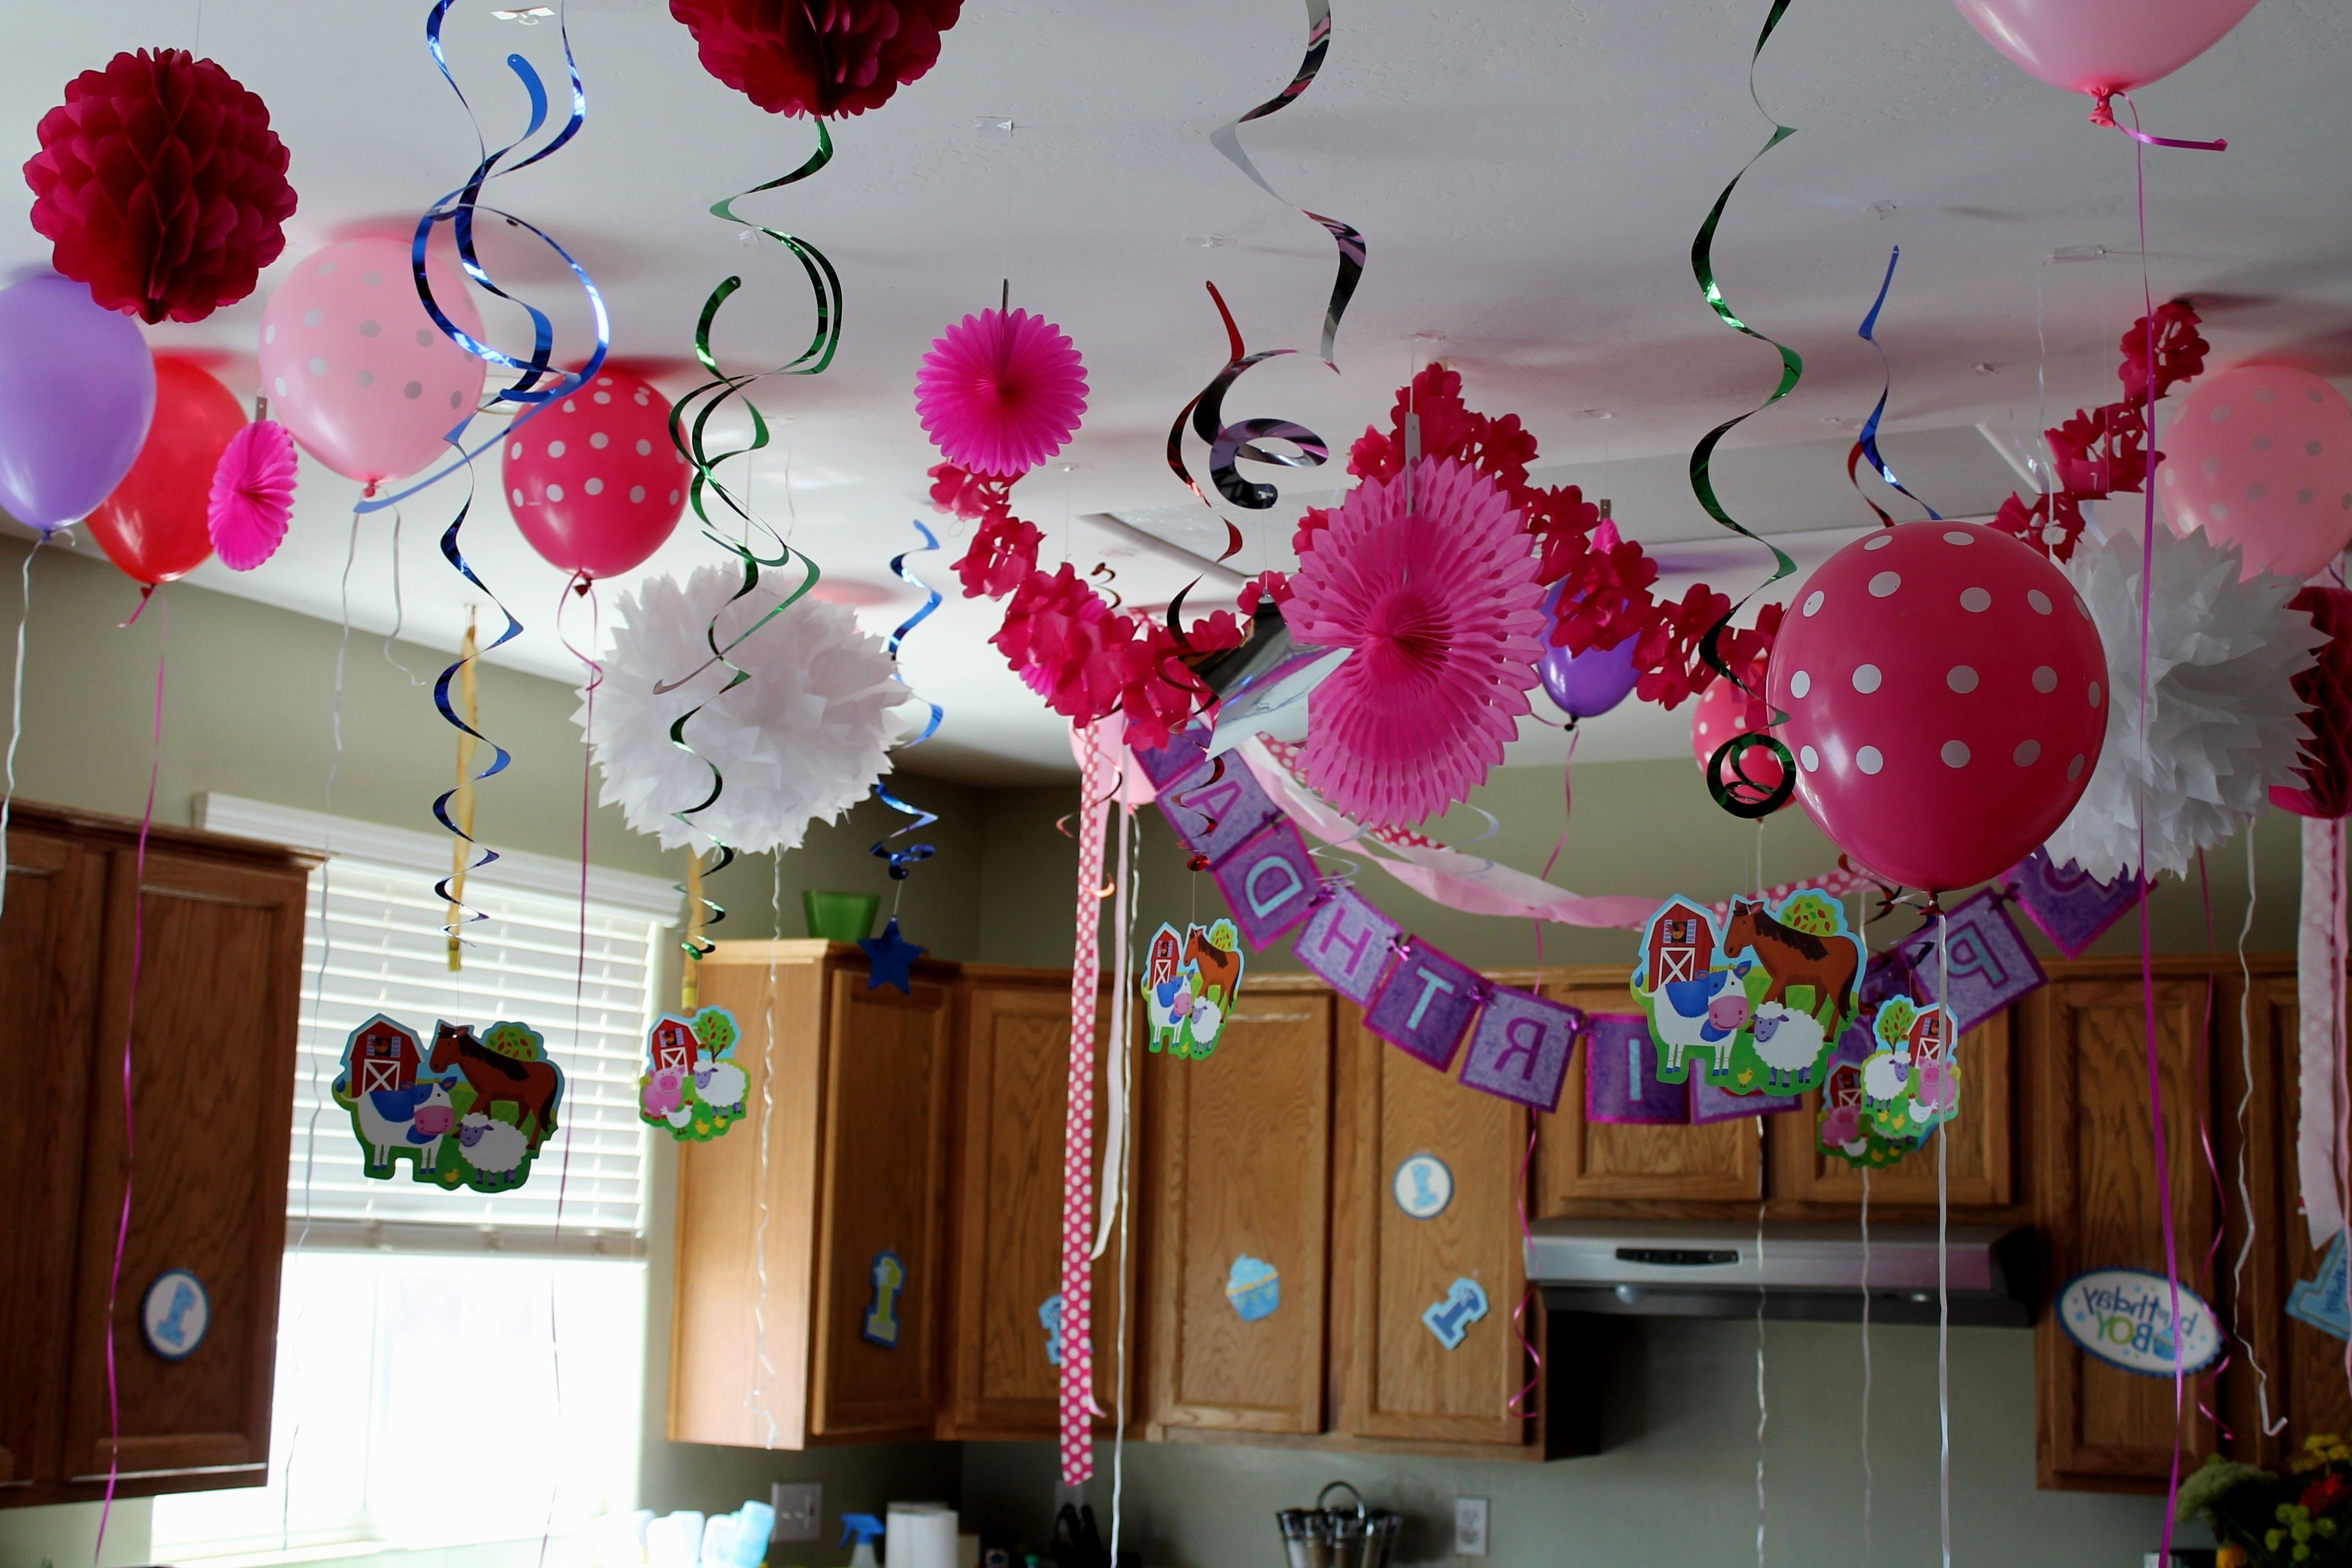 10 Unique Birthday Party At Home Ideas beautiful home decorating ideas for birthday homeideas 2020